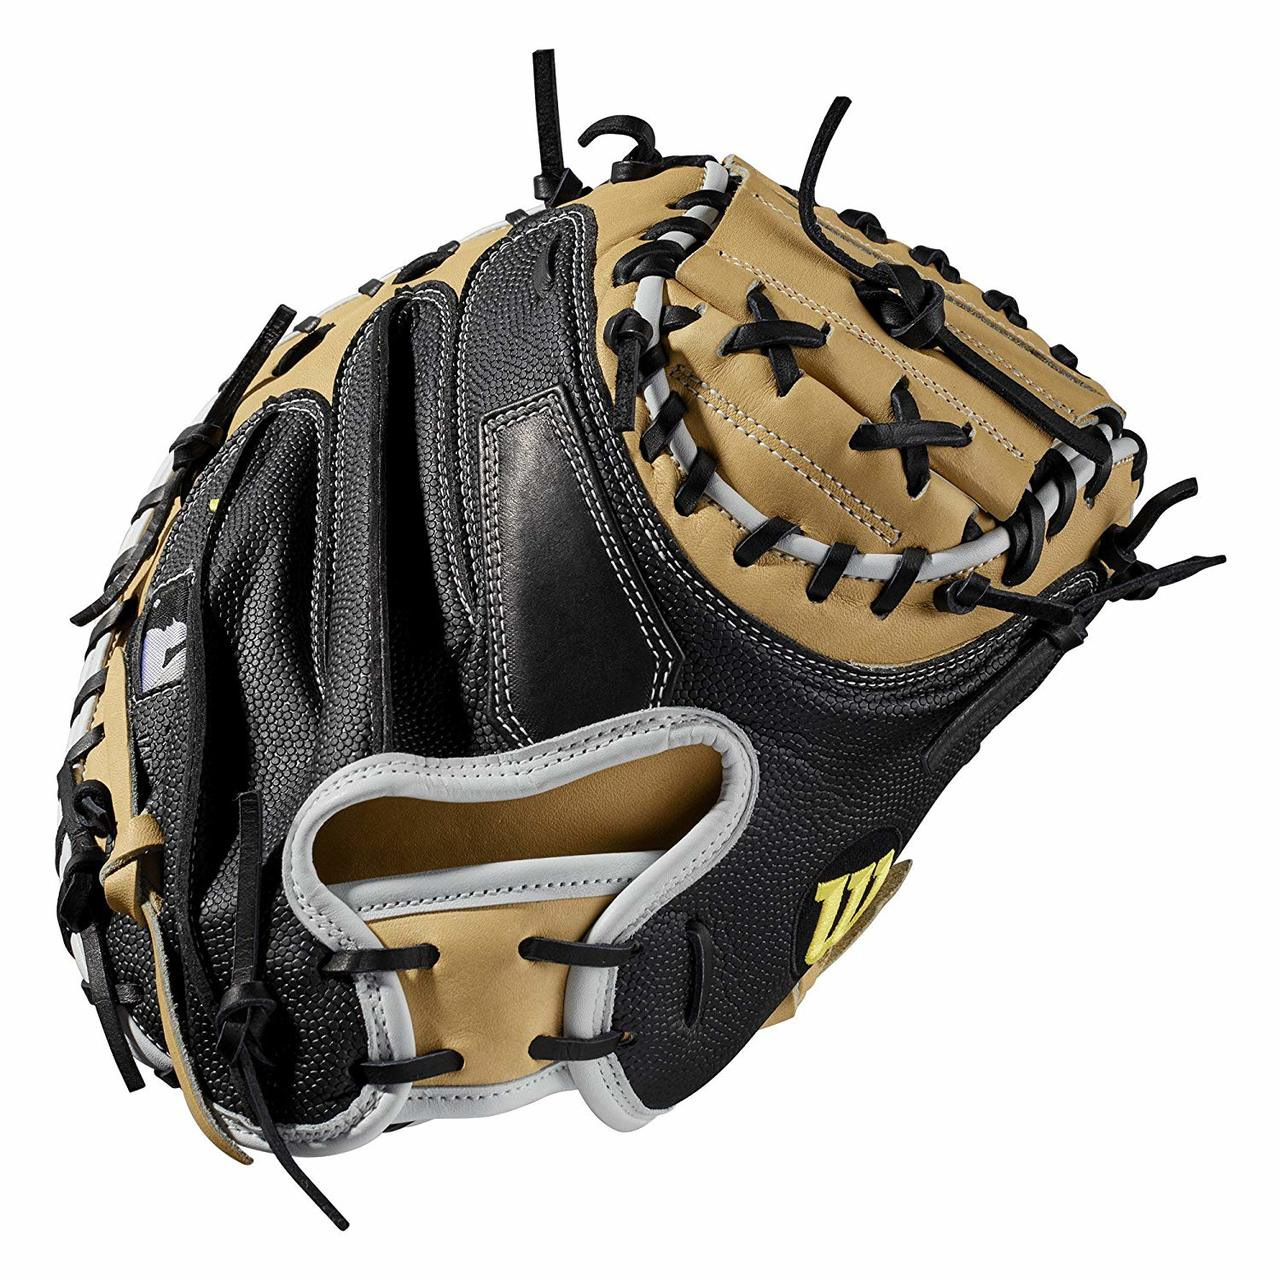 wilson-a2000-m1-ss-catchers-mitt-33-5-right-hand-throw-2019 WTA20RB19M1SS-RightHandThrow Wilson 887768702045 Catchers model; half moon web Extended palm Black SuperSkin twice as